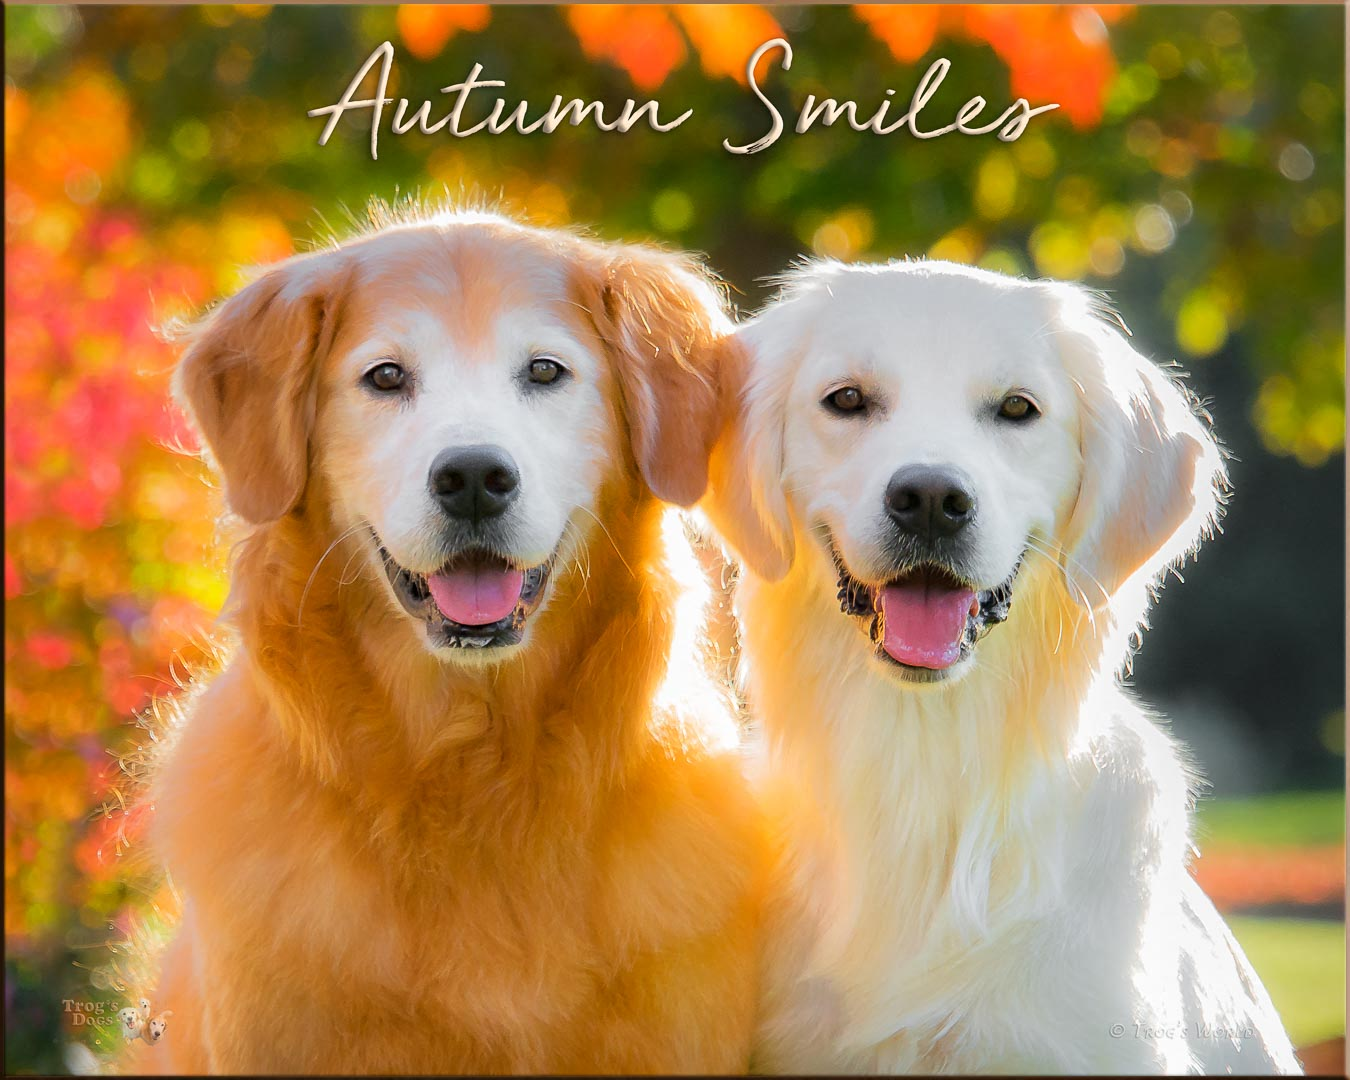 Two Golden Retrievers smiling on an autumn day